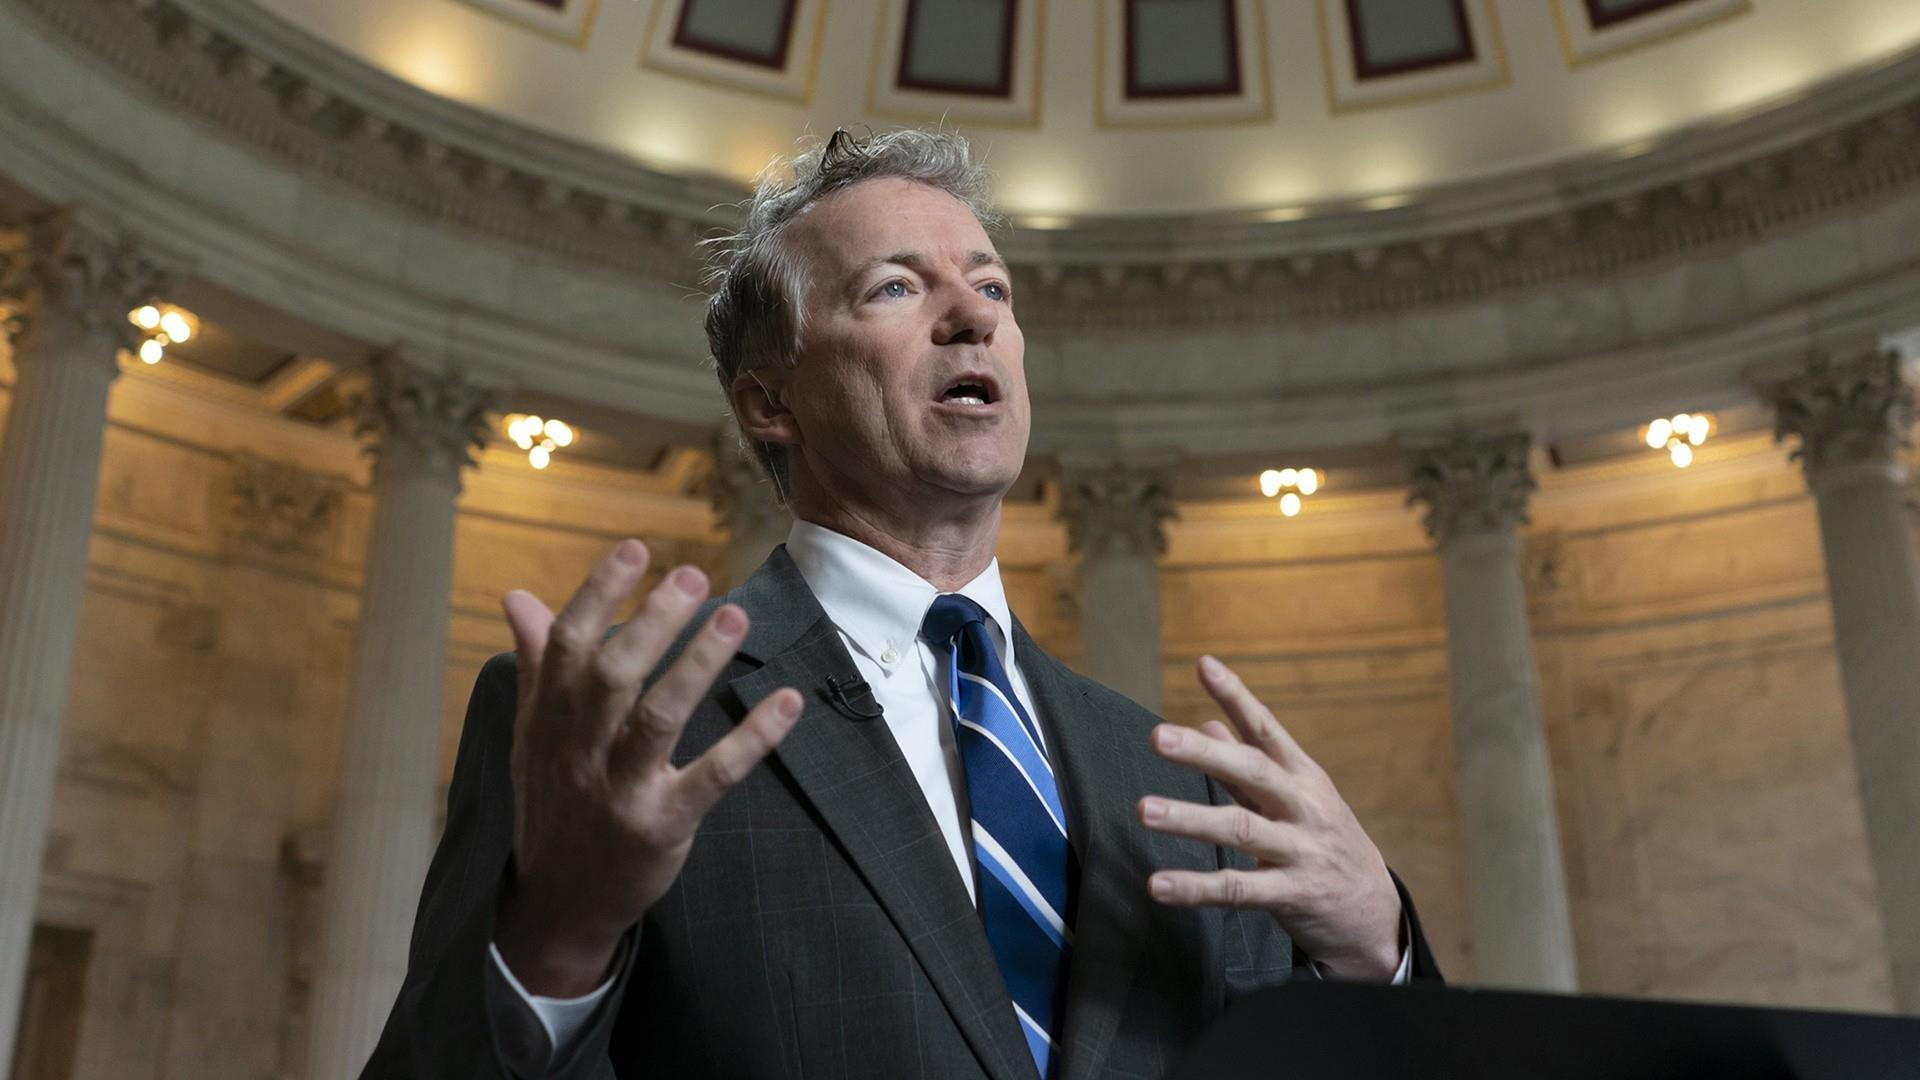 GOP Sen. Rand Paul to vote no on National Emergency, sets Trump up for first veto